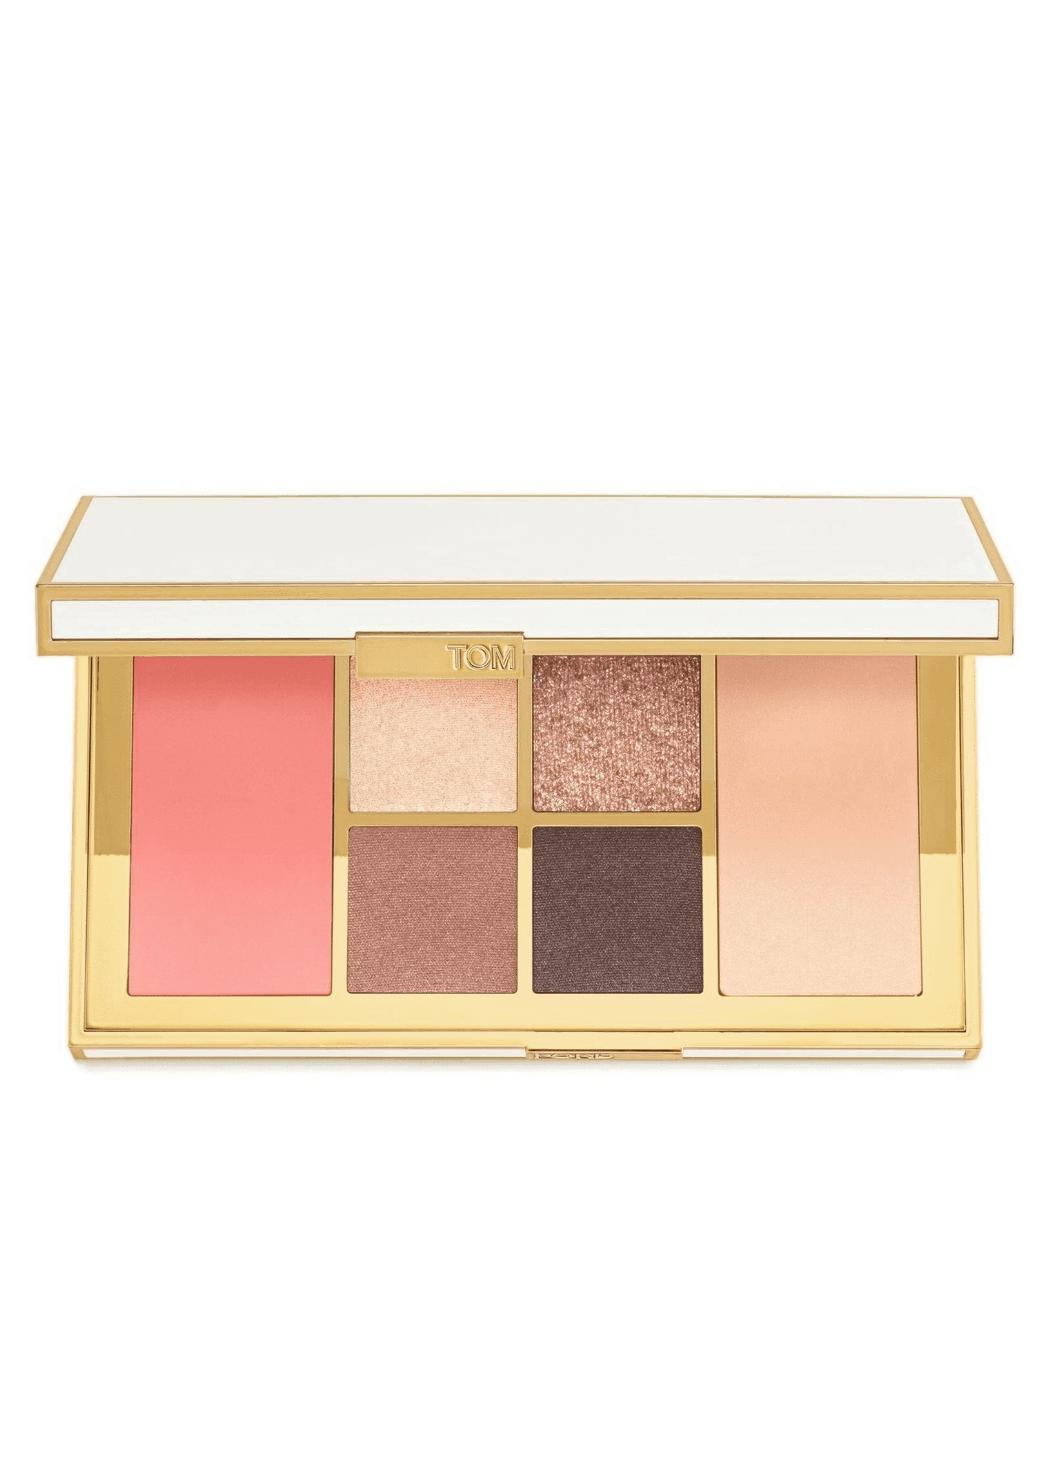 TOM FORD Soleil Eye and Cheek Palette Warm 02